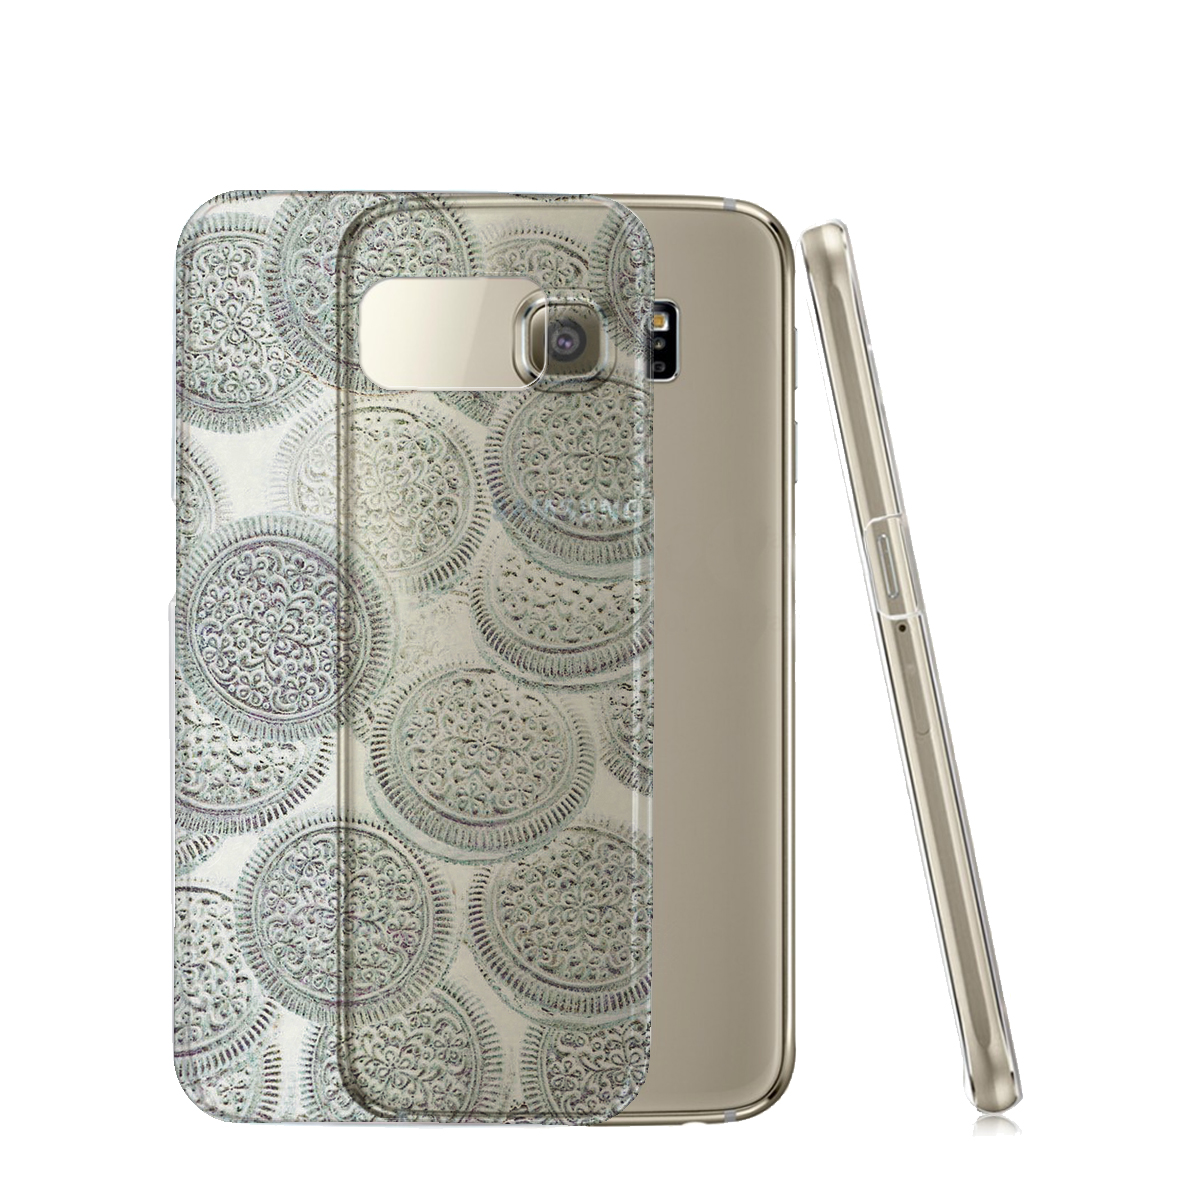 KuzmarK™ Samsung Galaxy S6 Edge Clear Cover Case - White Chocolate Cookies